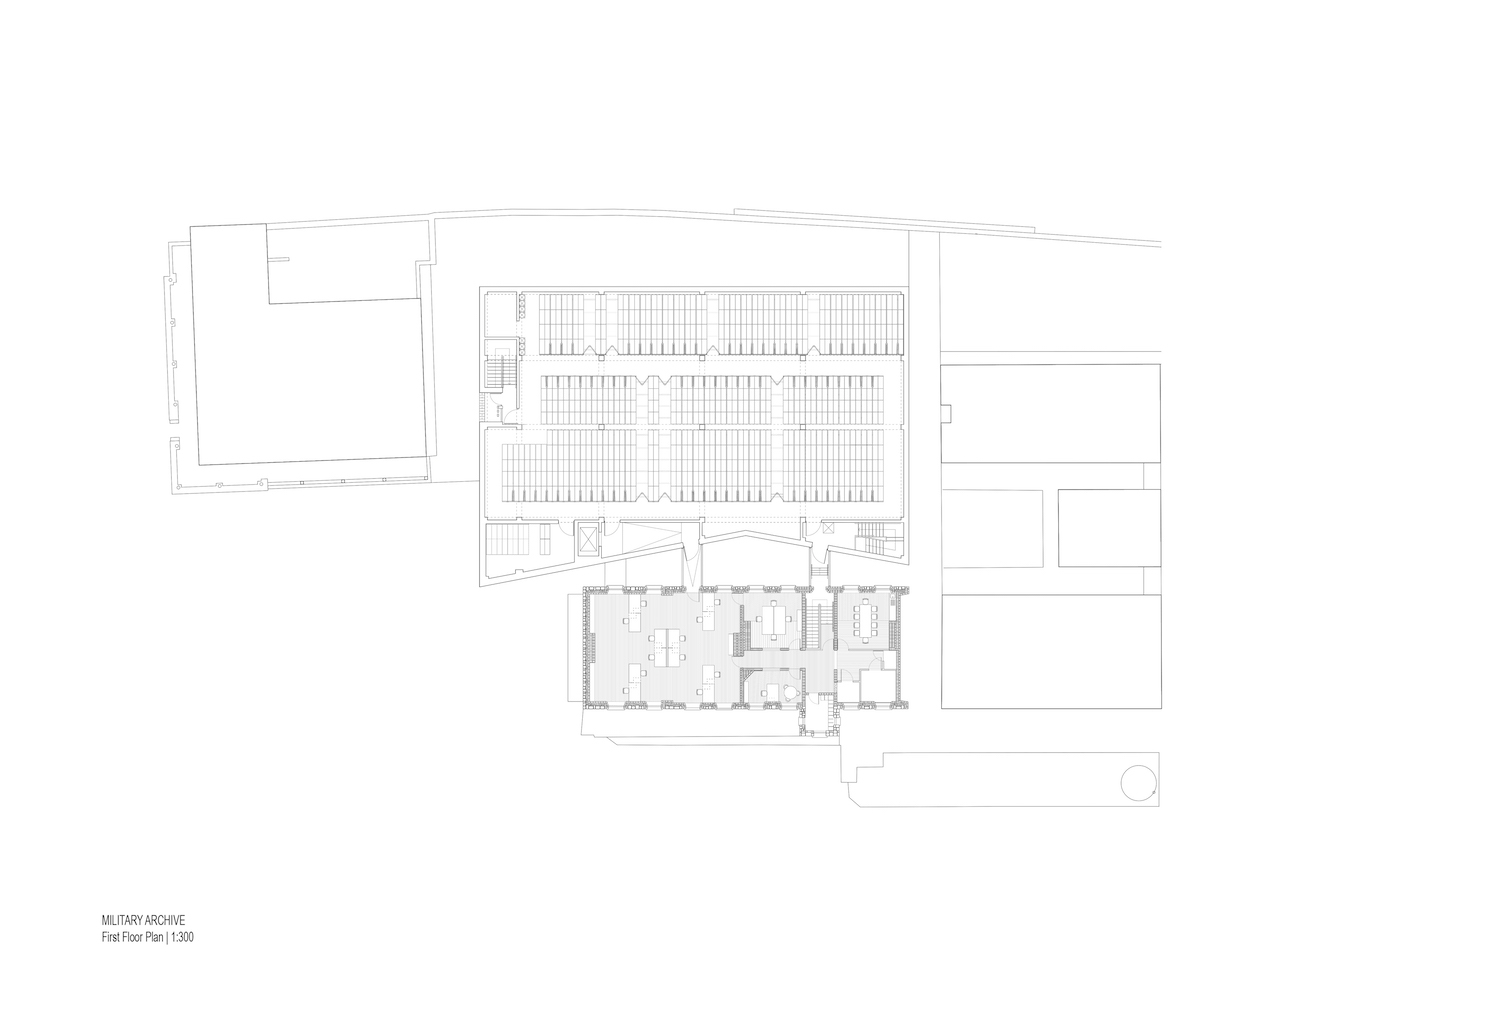 Archives first floor plan McCullough Mulvin}